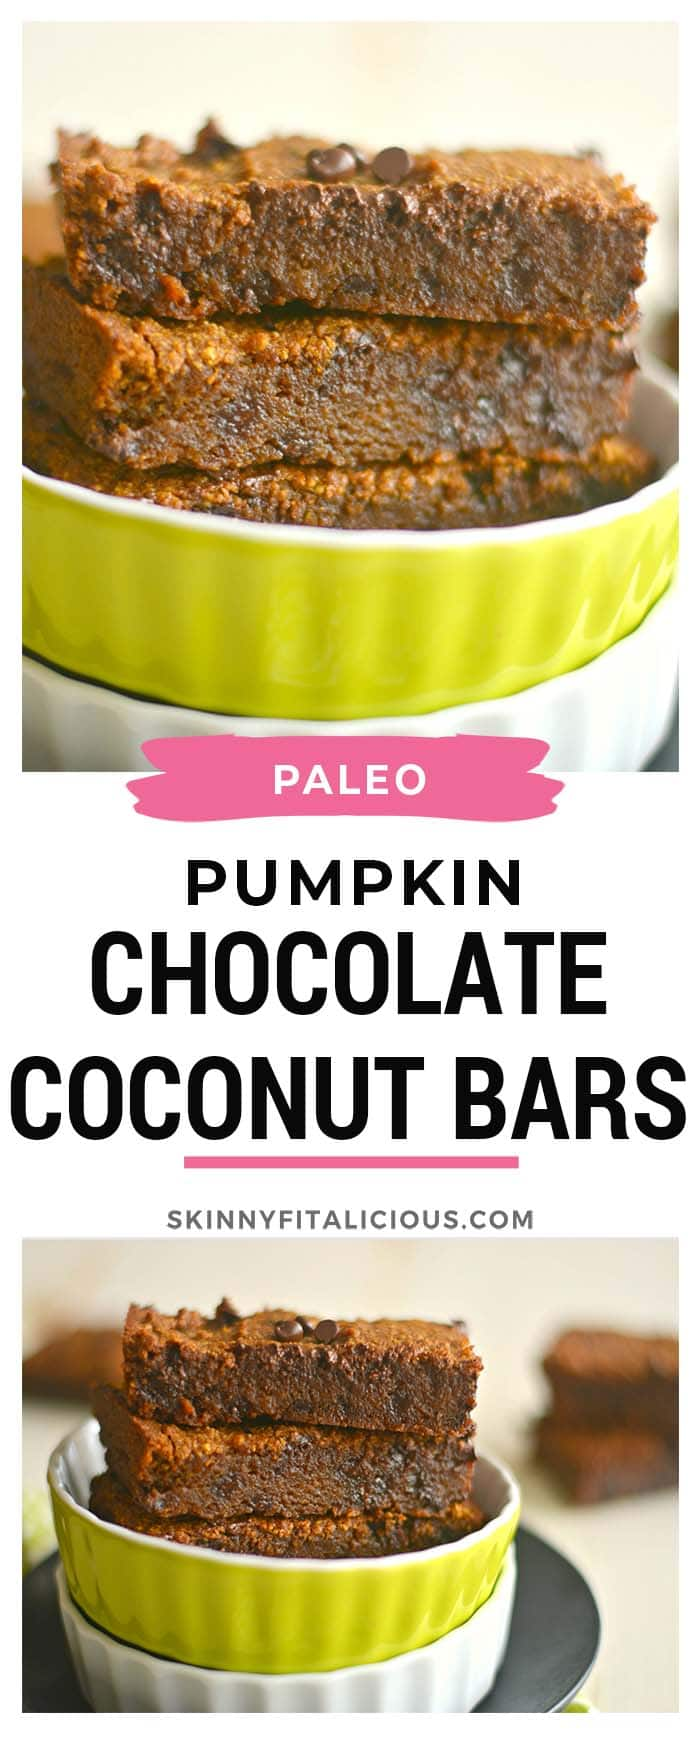 Paleo Pumpkin Chocolate Coconut Oil Bars! These gooey brownies melt in your mouth with every bite. Easy to make and absolutely delicious. Gluten Free + Paleo